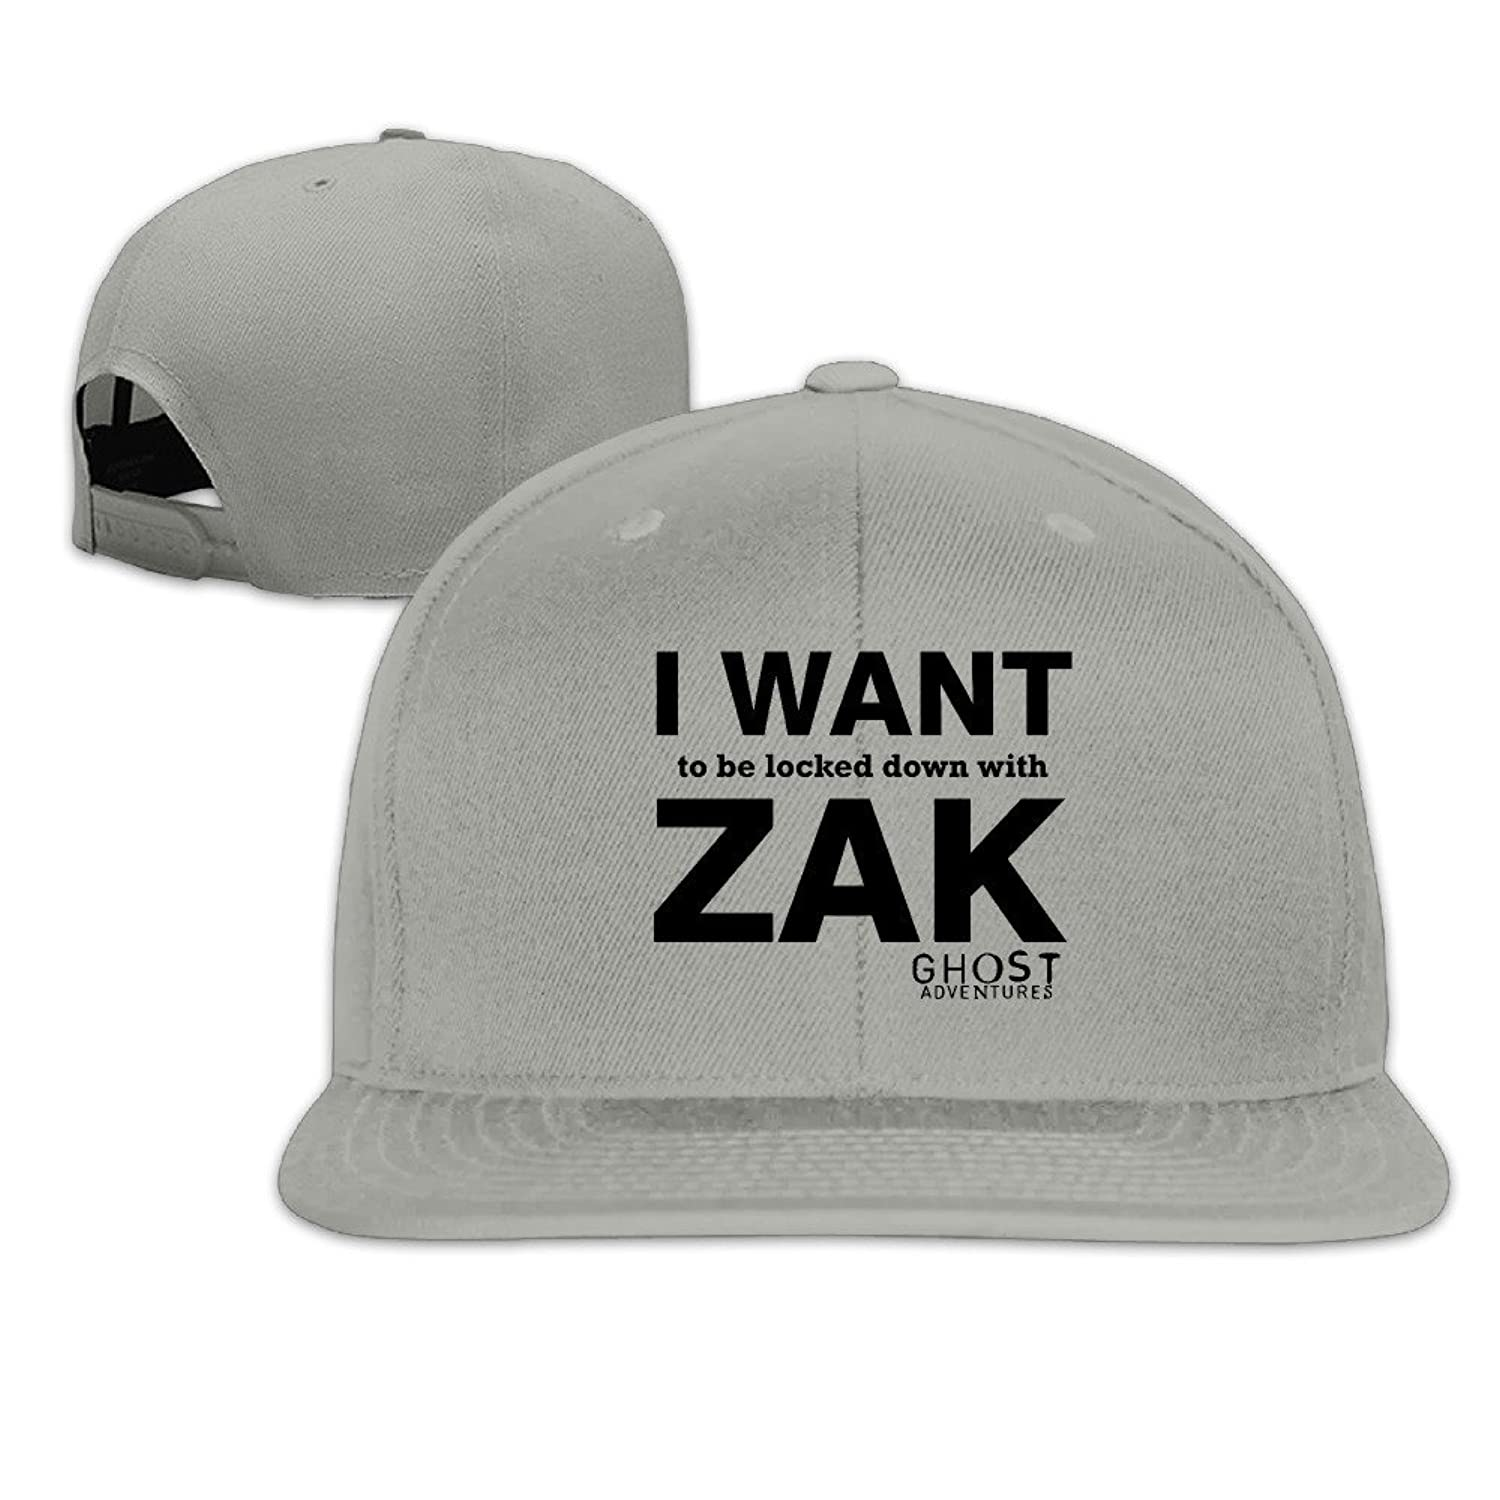 YP Men S Ghost Adventures Locked Down With Zak Flatbrim Baseball Cap Ash One Size at Amazon Mens Clothing store: